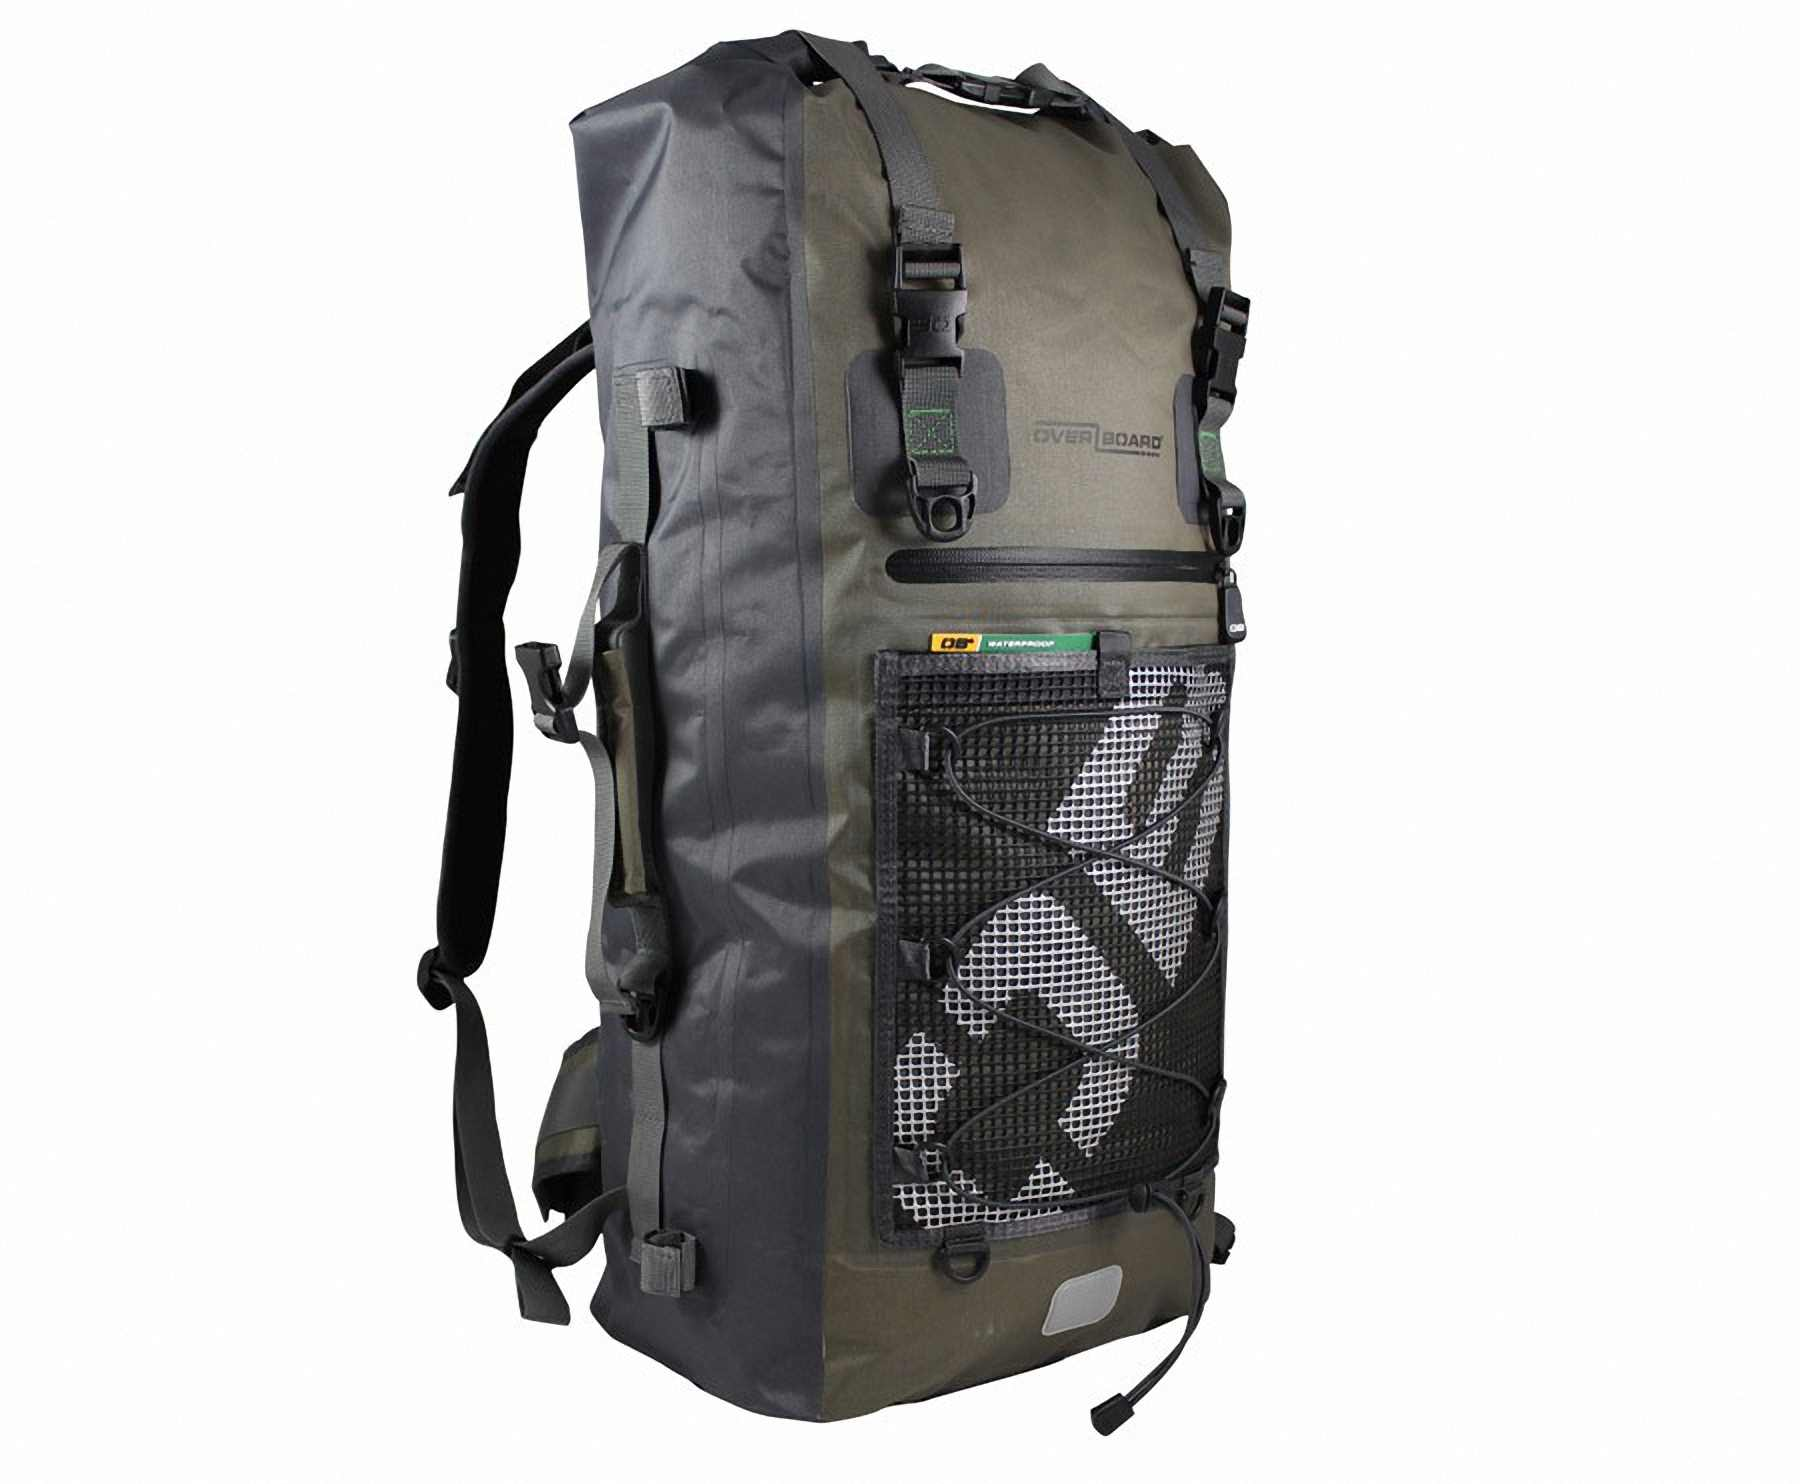 Водонепроницаемый рюкзак OverBoard OB1119G - Ultra-light Waterproof Backpack - 50L. Фото 2